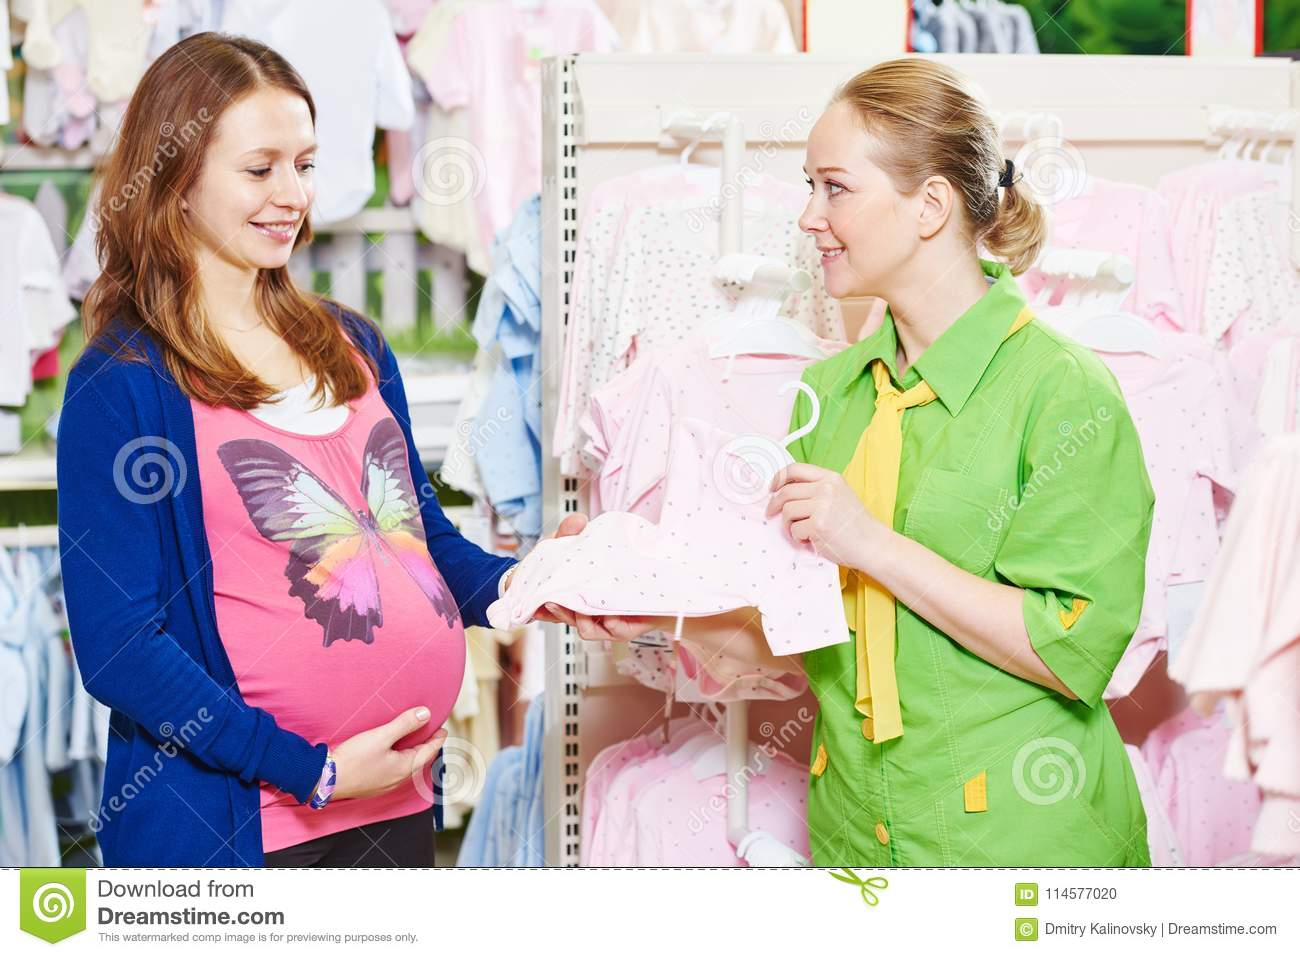 Pregnant Shopping Young Woman Shopping During Pregnancy Stock Photo Image Of Garments Choosing 114577020